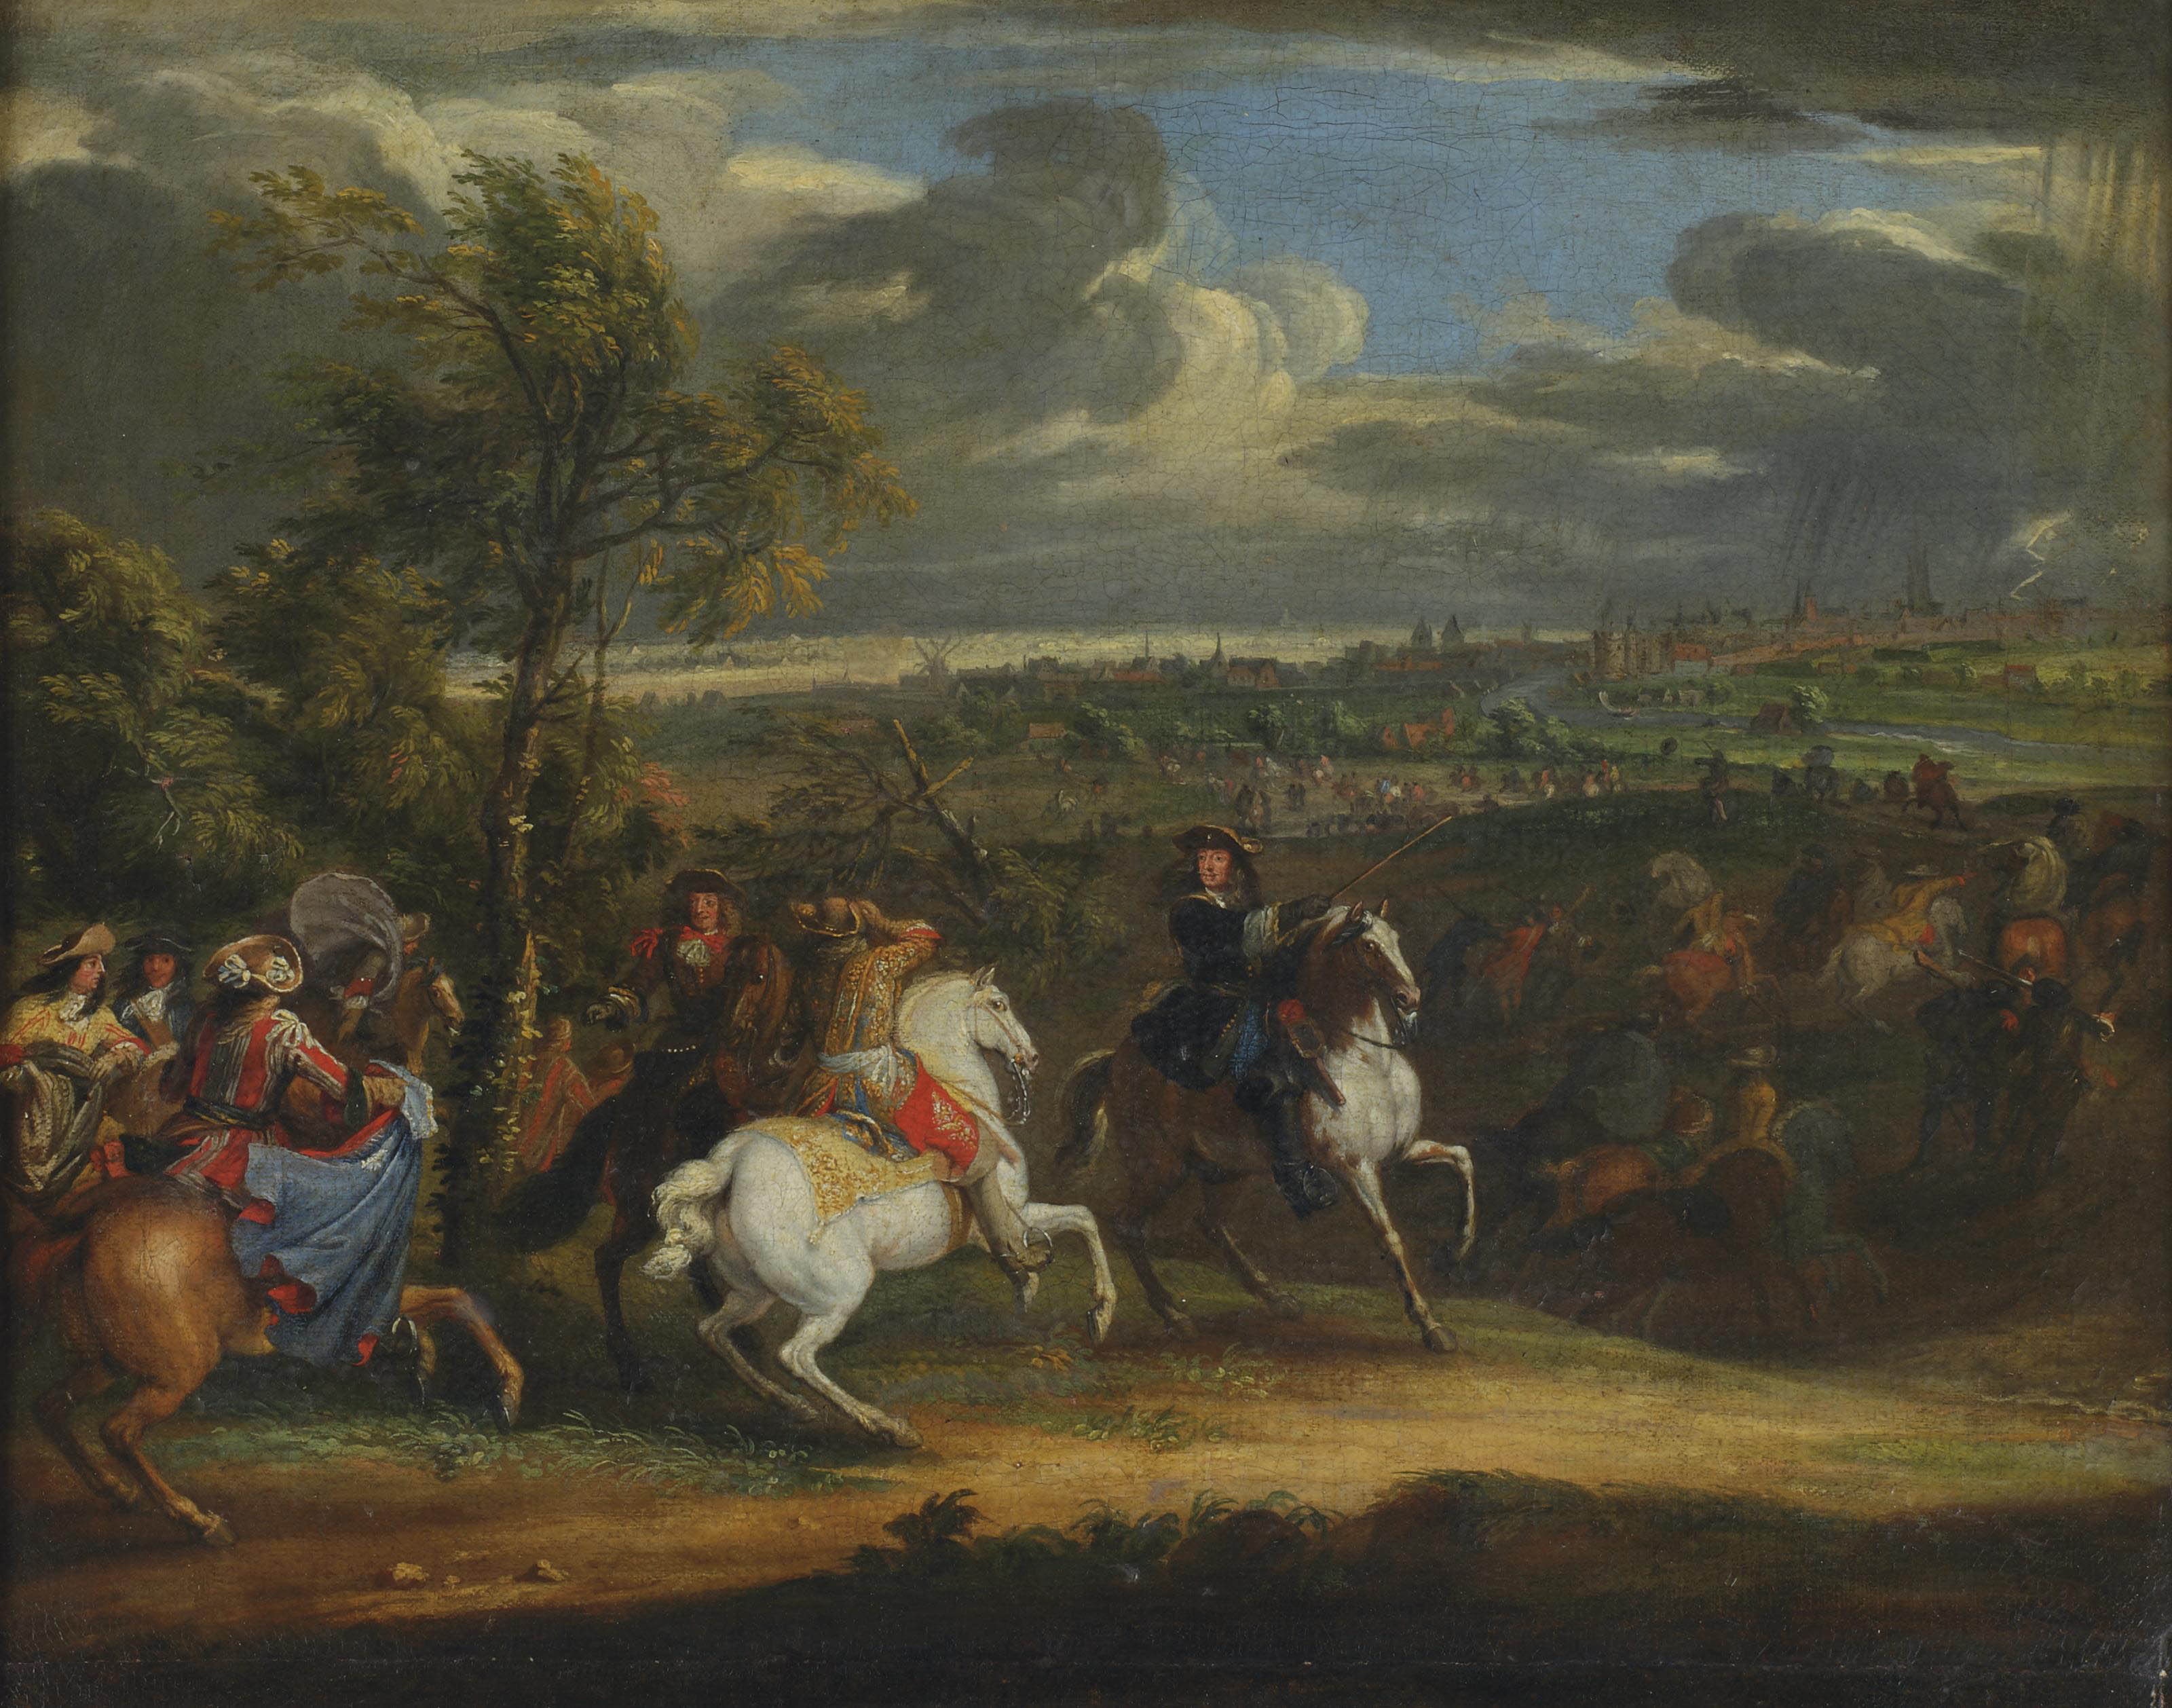 Louis XIV with his army at the seige of Courtrai in 1667